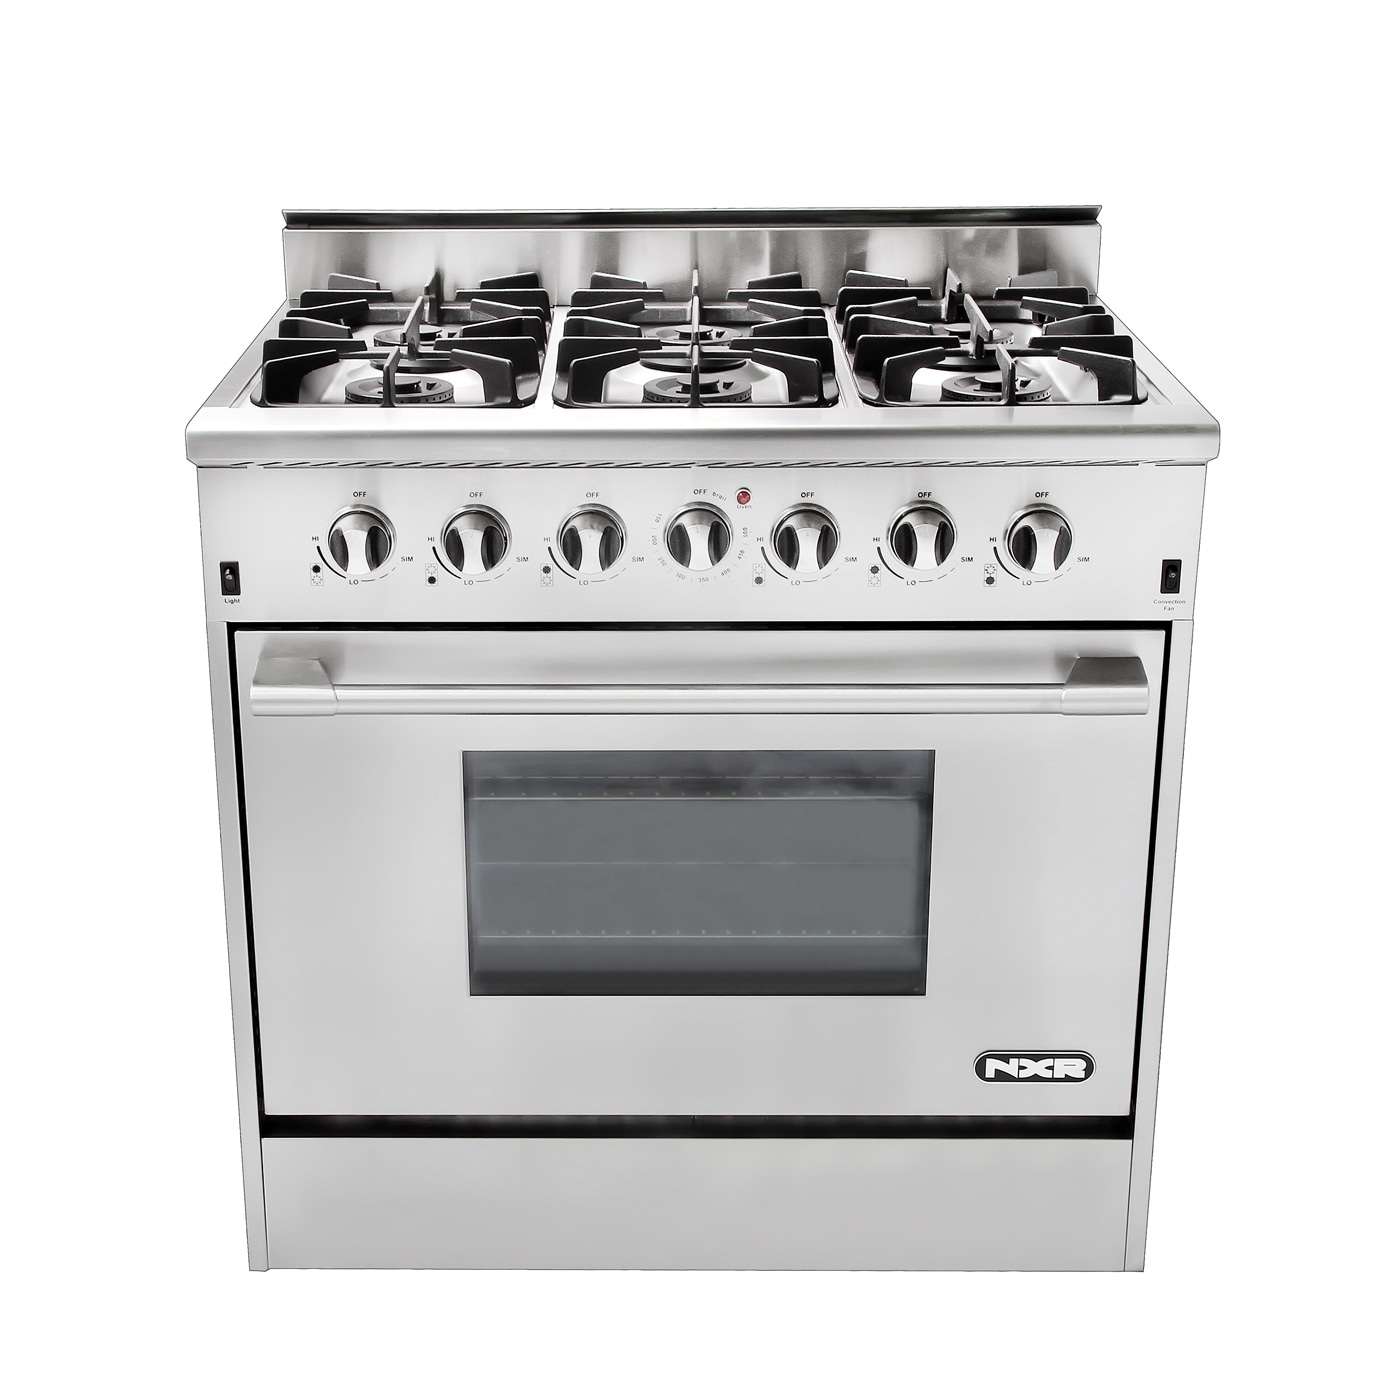 Nxr Professional Range 36 Inch 6 Burner Free Shipping Today 10084655